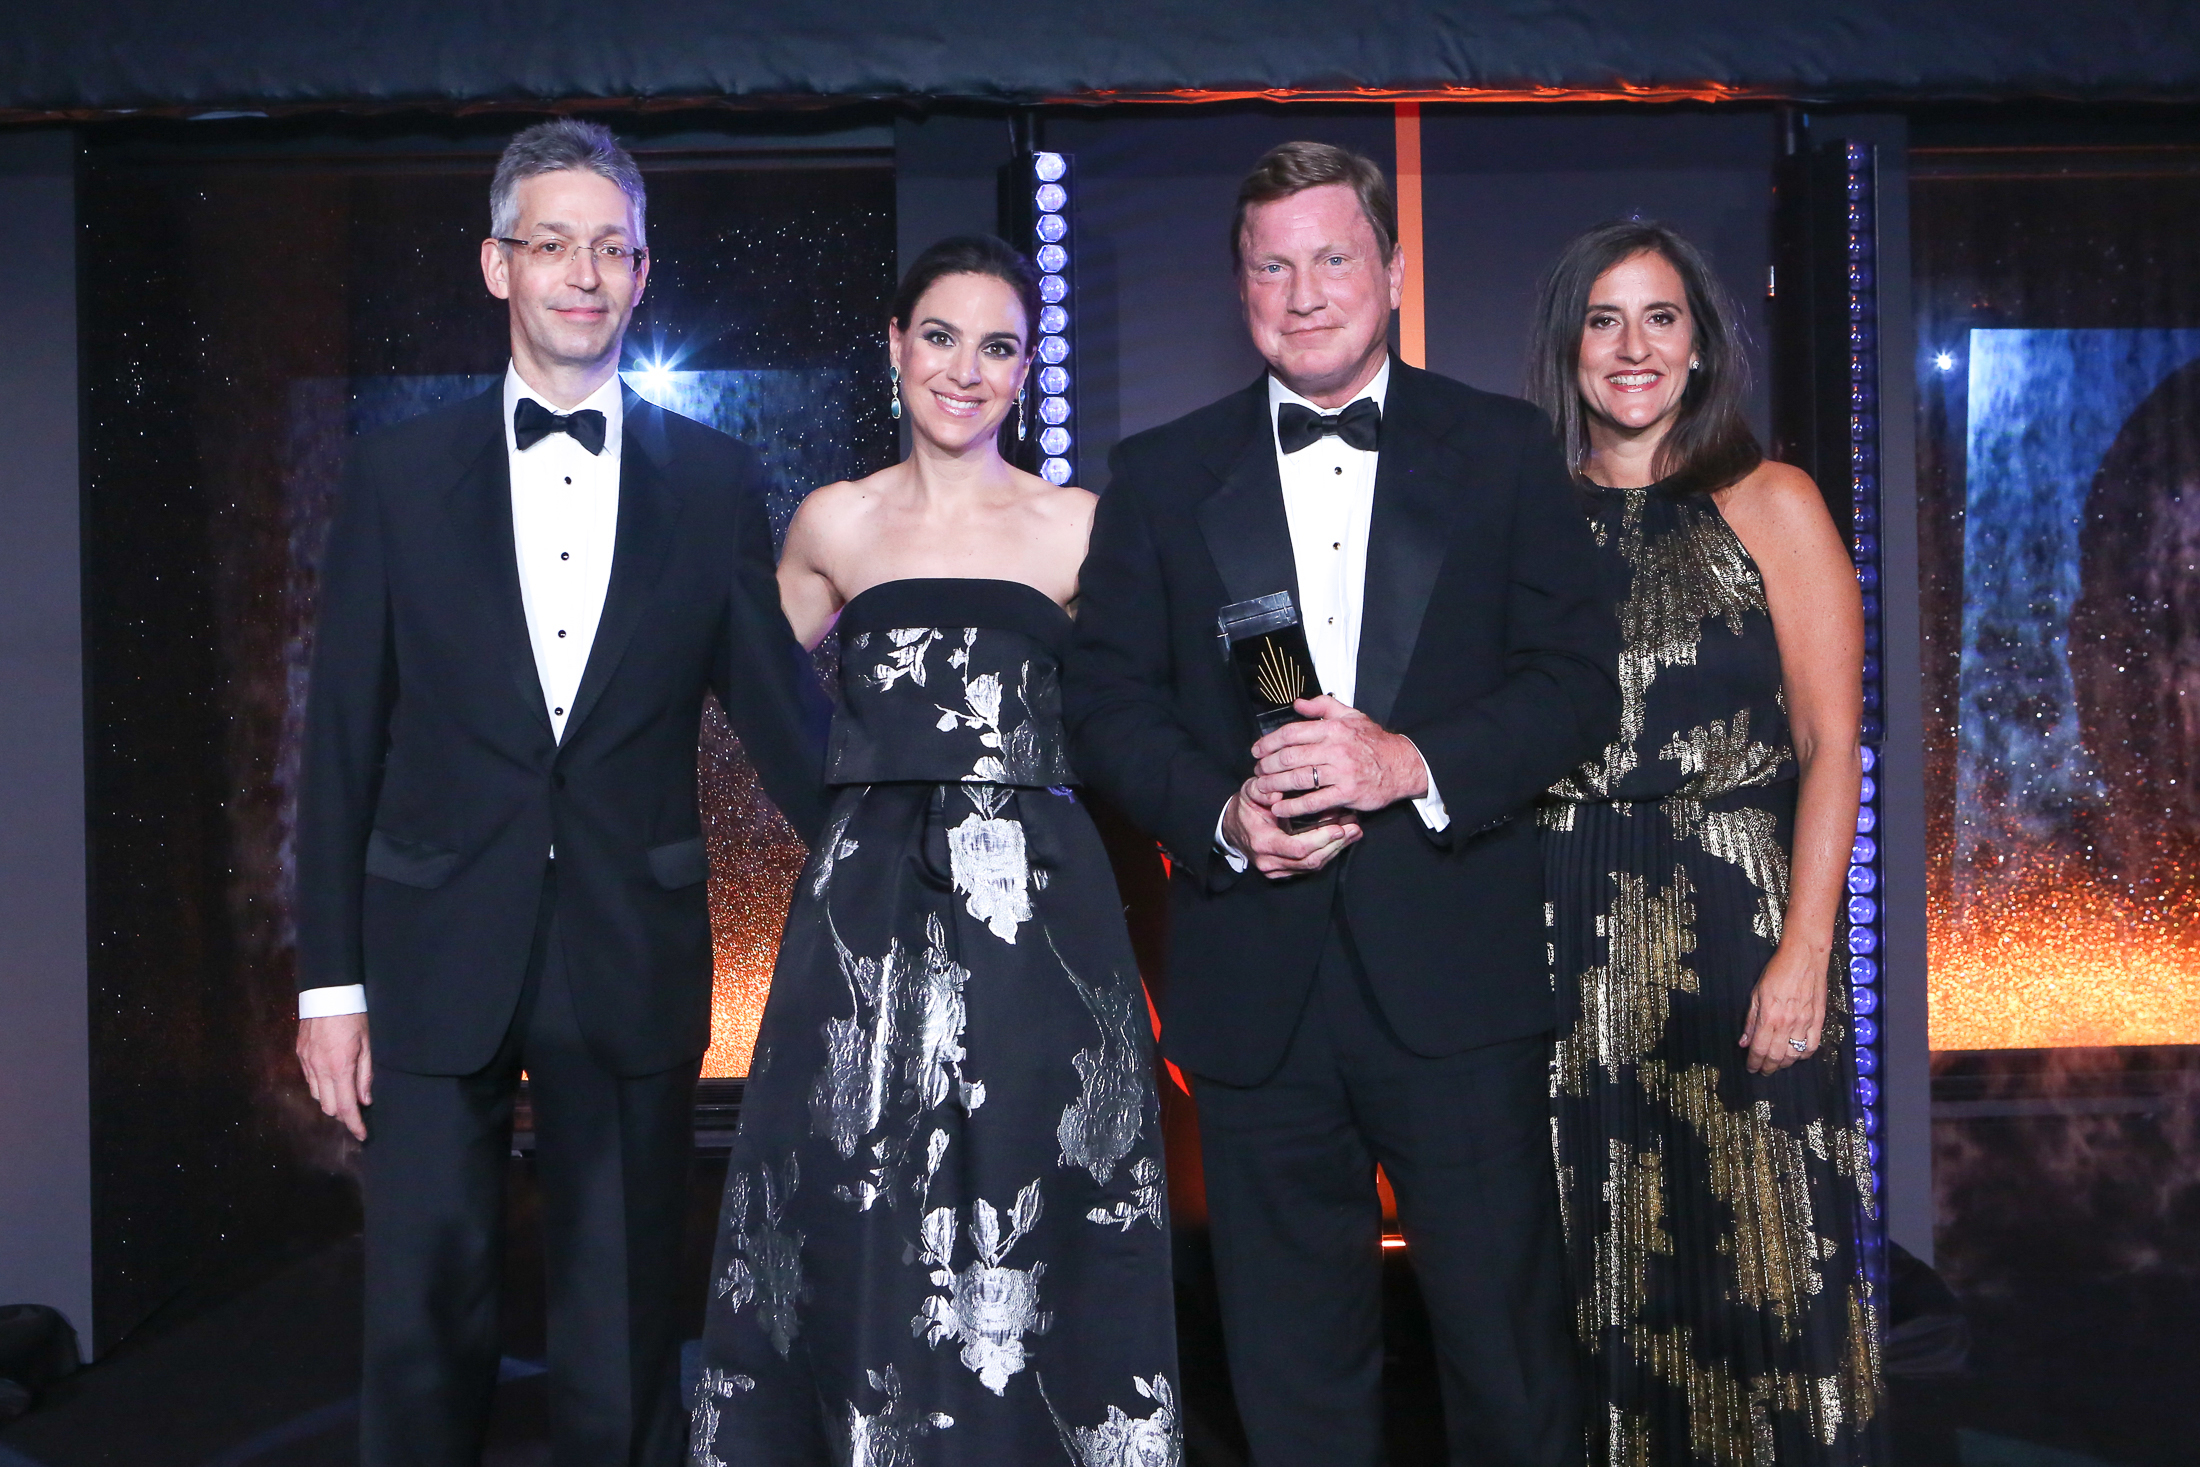 Gas Companies In Georgia >> Tom Fanning Named Global CEO of the Year at 2018 S&P ...